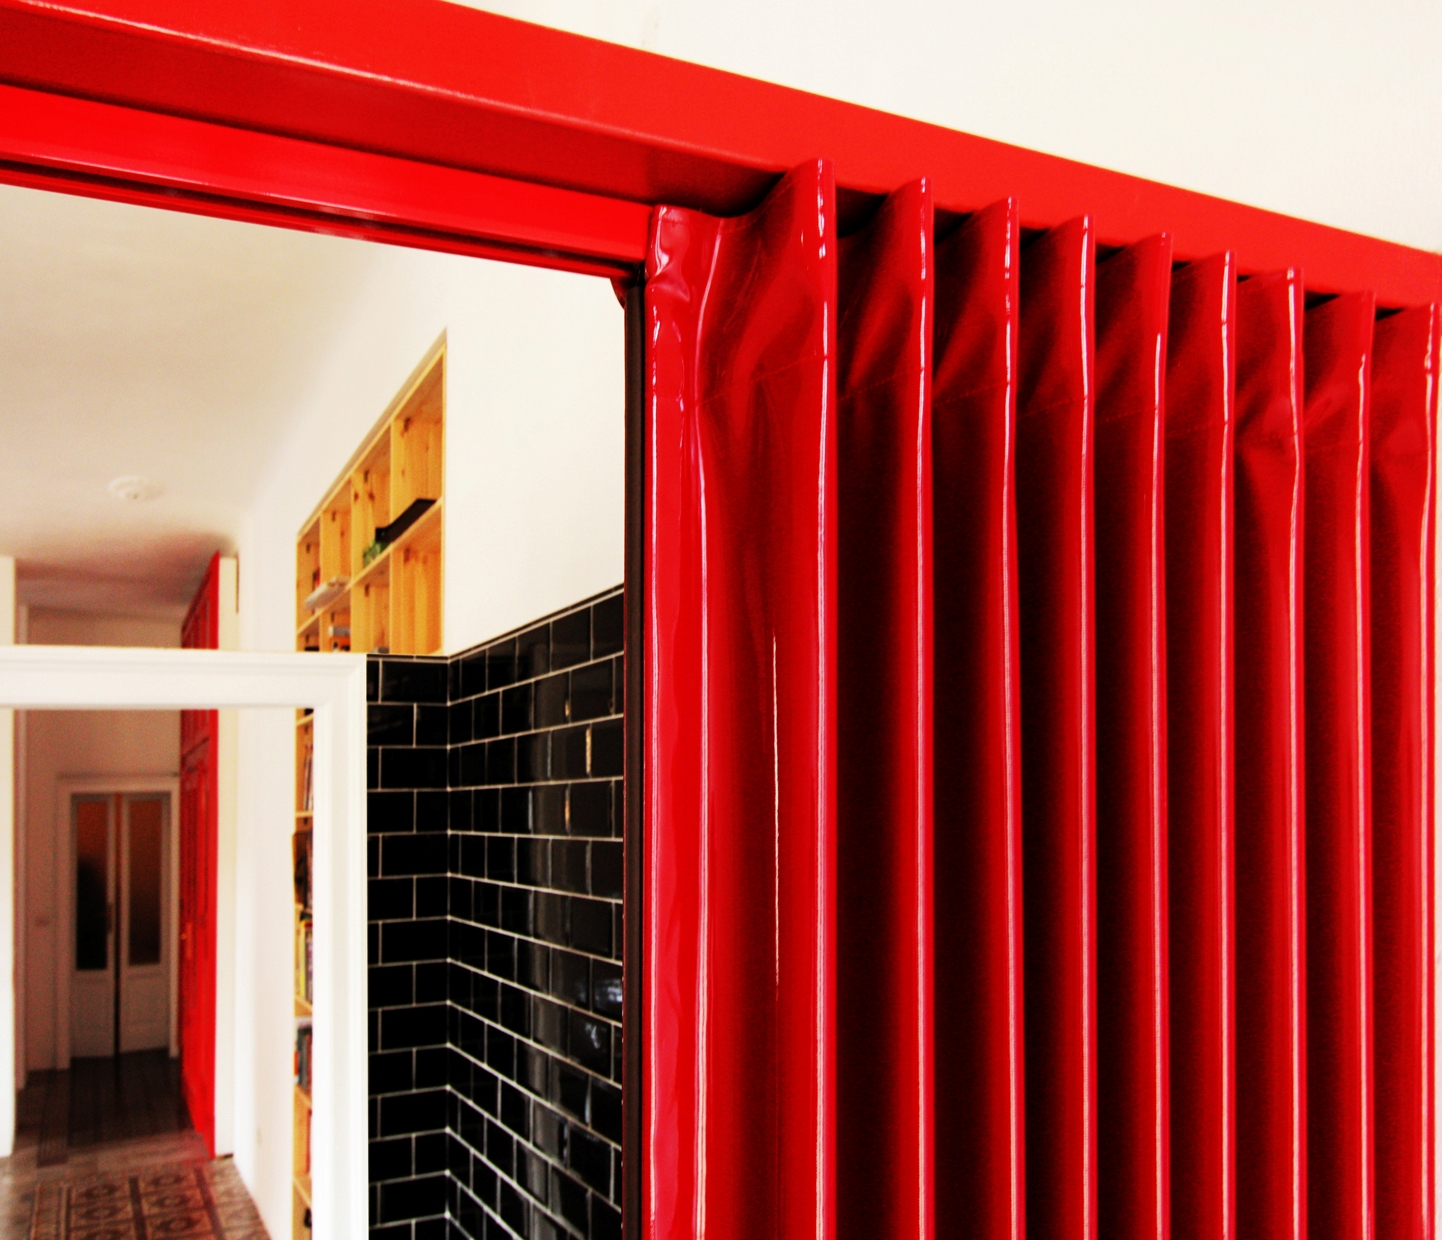 1240 #BE0D0E Accordion Doors: Glossy Red Folding Door By Architect Feresin Milan image Folding Accordion Doors 29231442